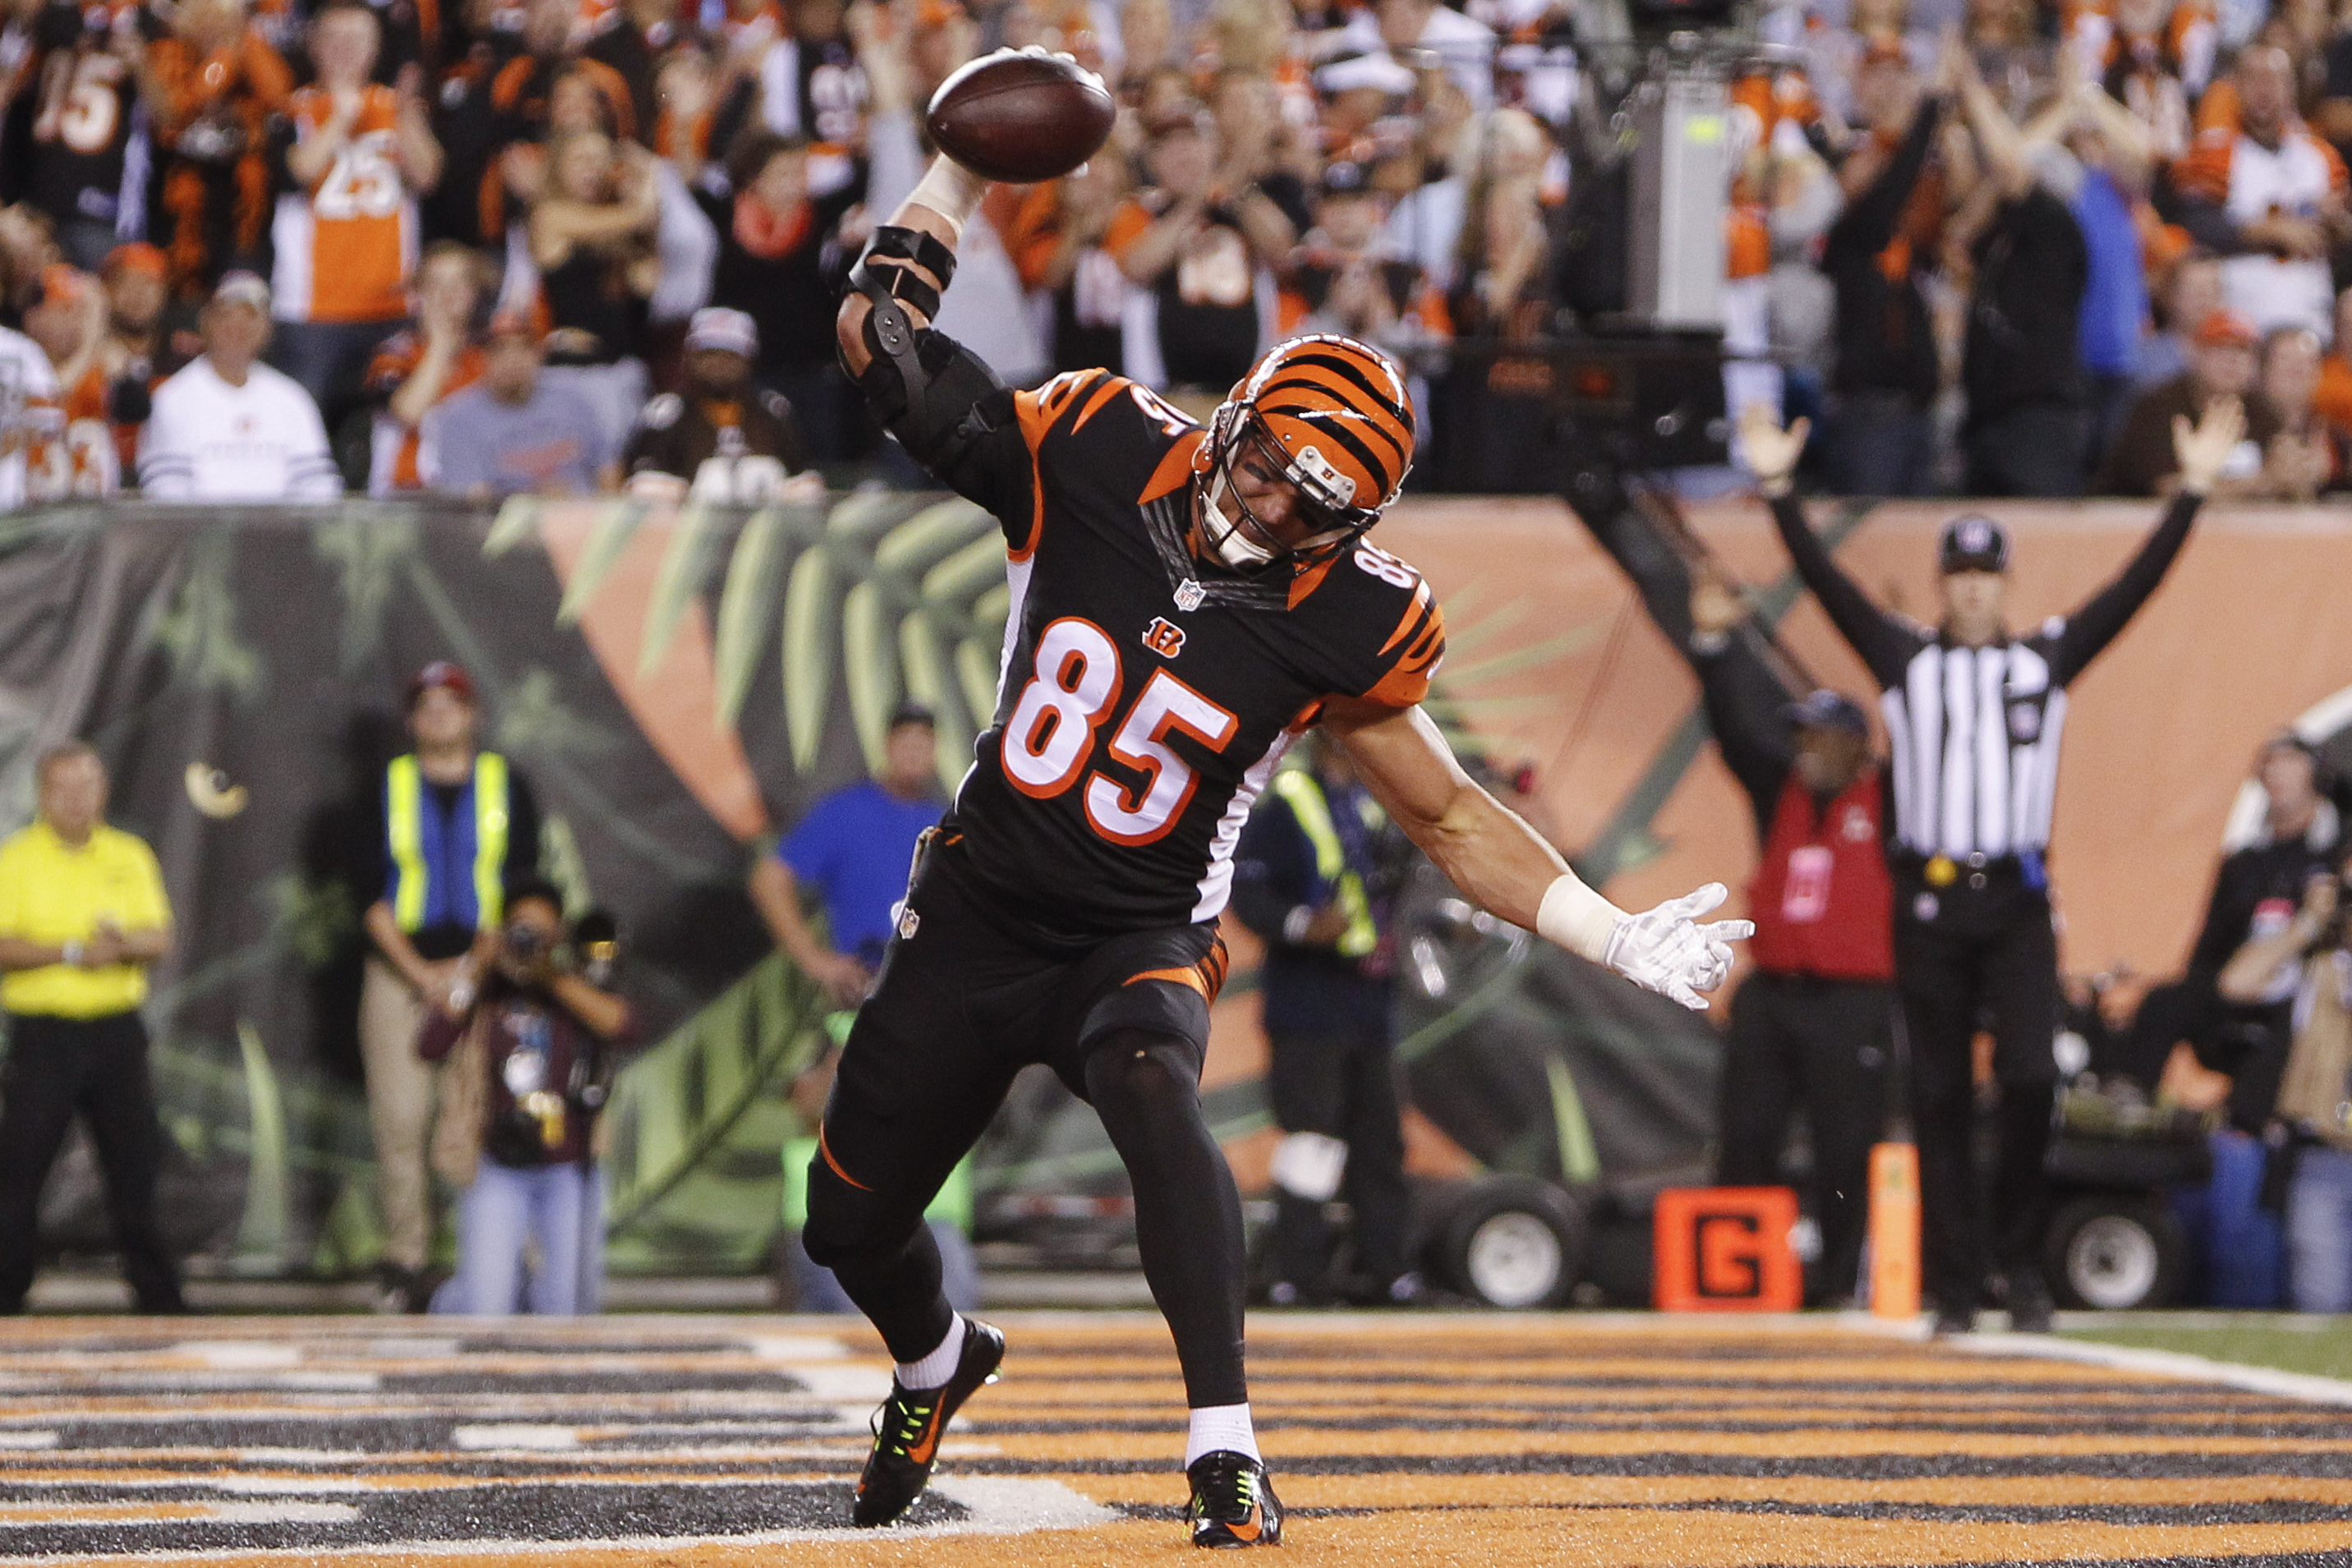 Cincinnati Bengals tight end Tyler Eifert celebrates after scoring a touchdown during the first half of an NFL football game against the Cleveland Browns, Thursday, Nov. 5, 2015, in Cincinnati. (AP Photo/Frank Victores)